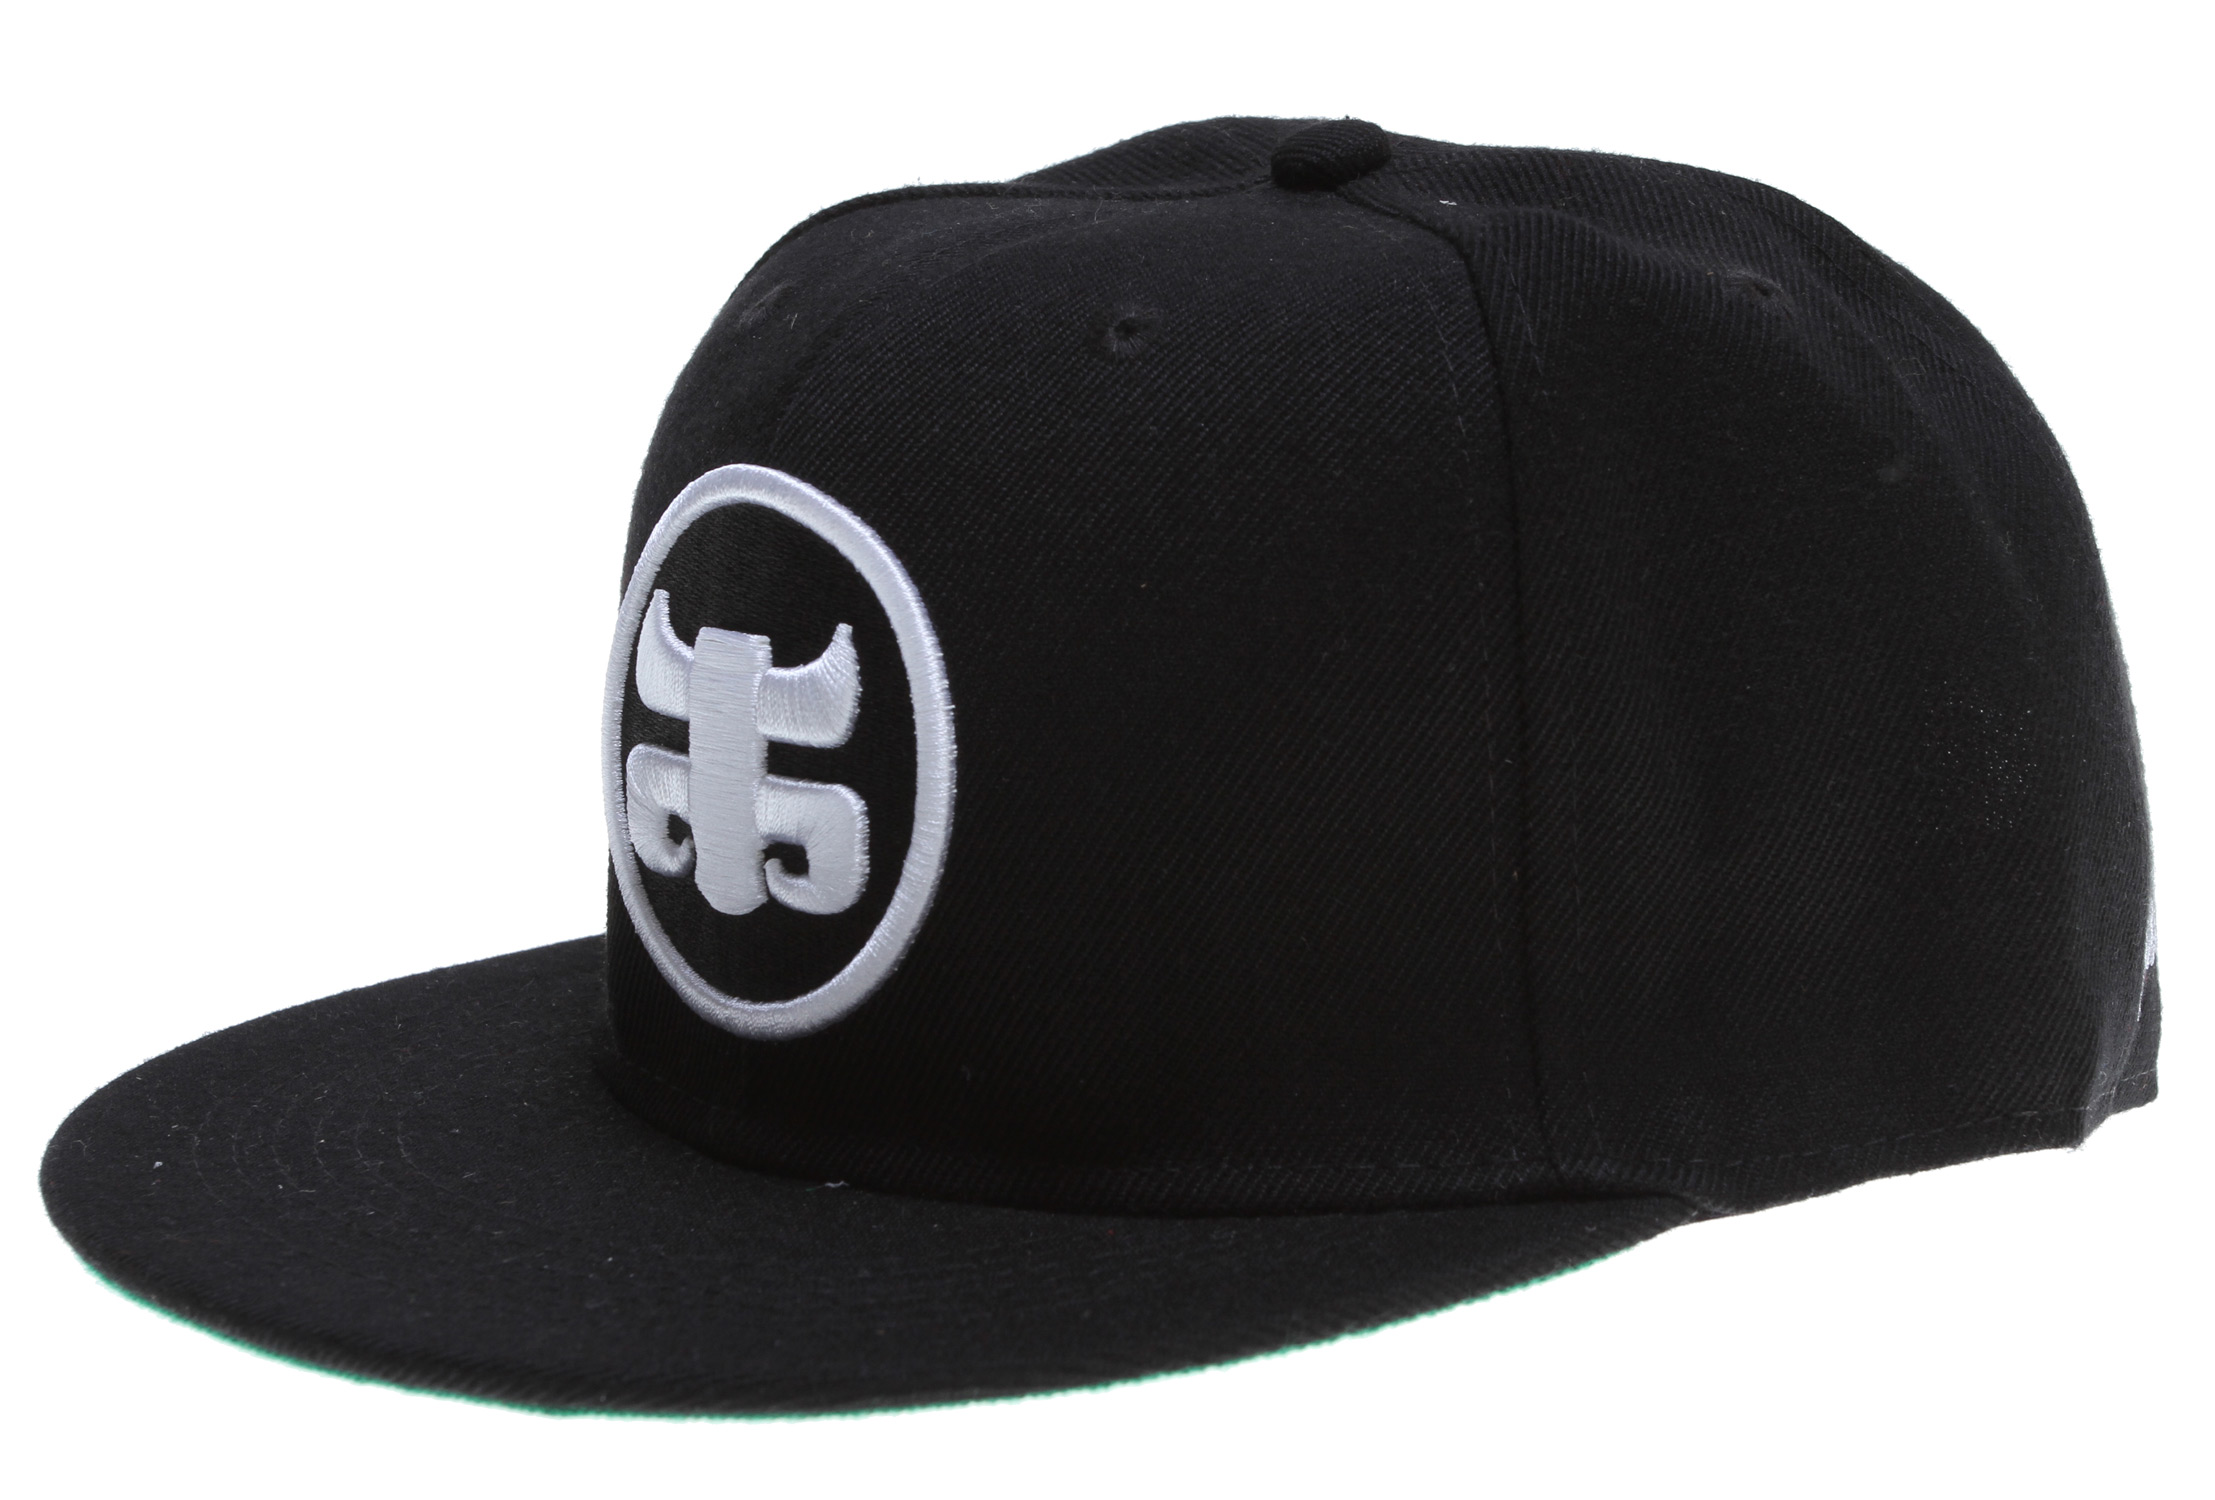 100% Cotton/Poly Blended Snap Back With Full Front Icon Embroidery. - $12.95